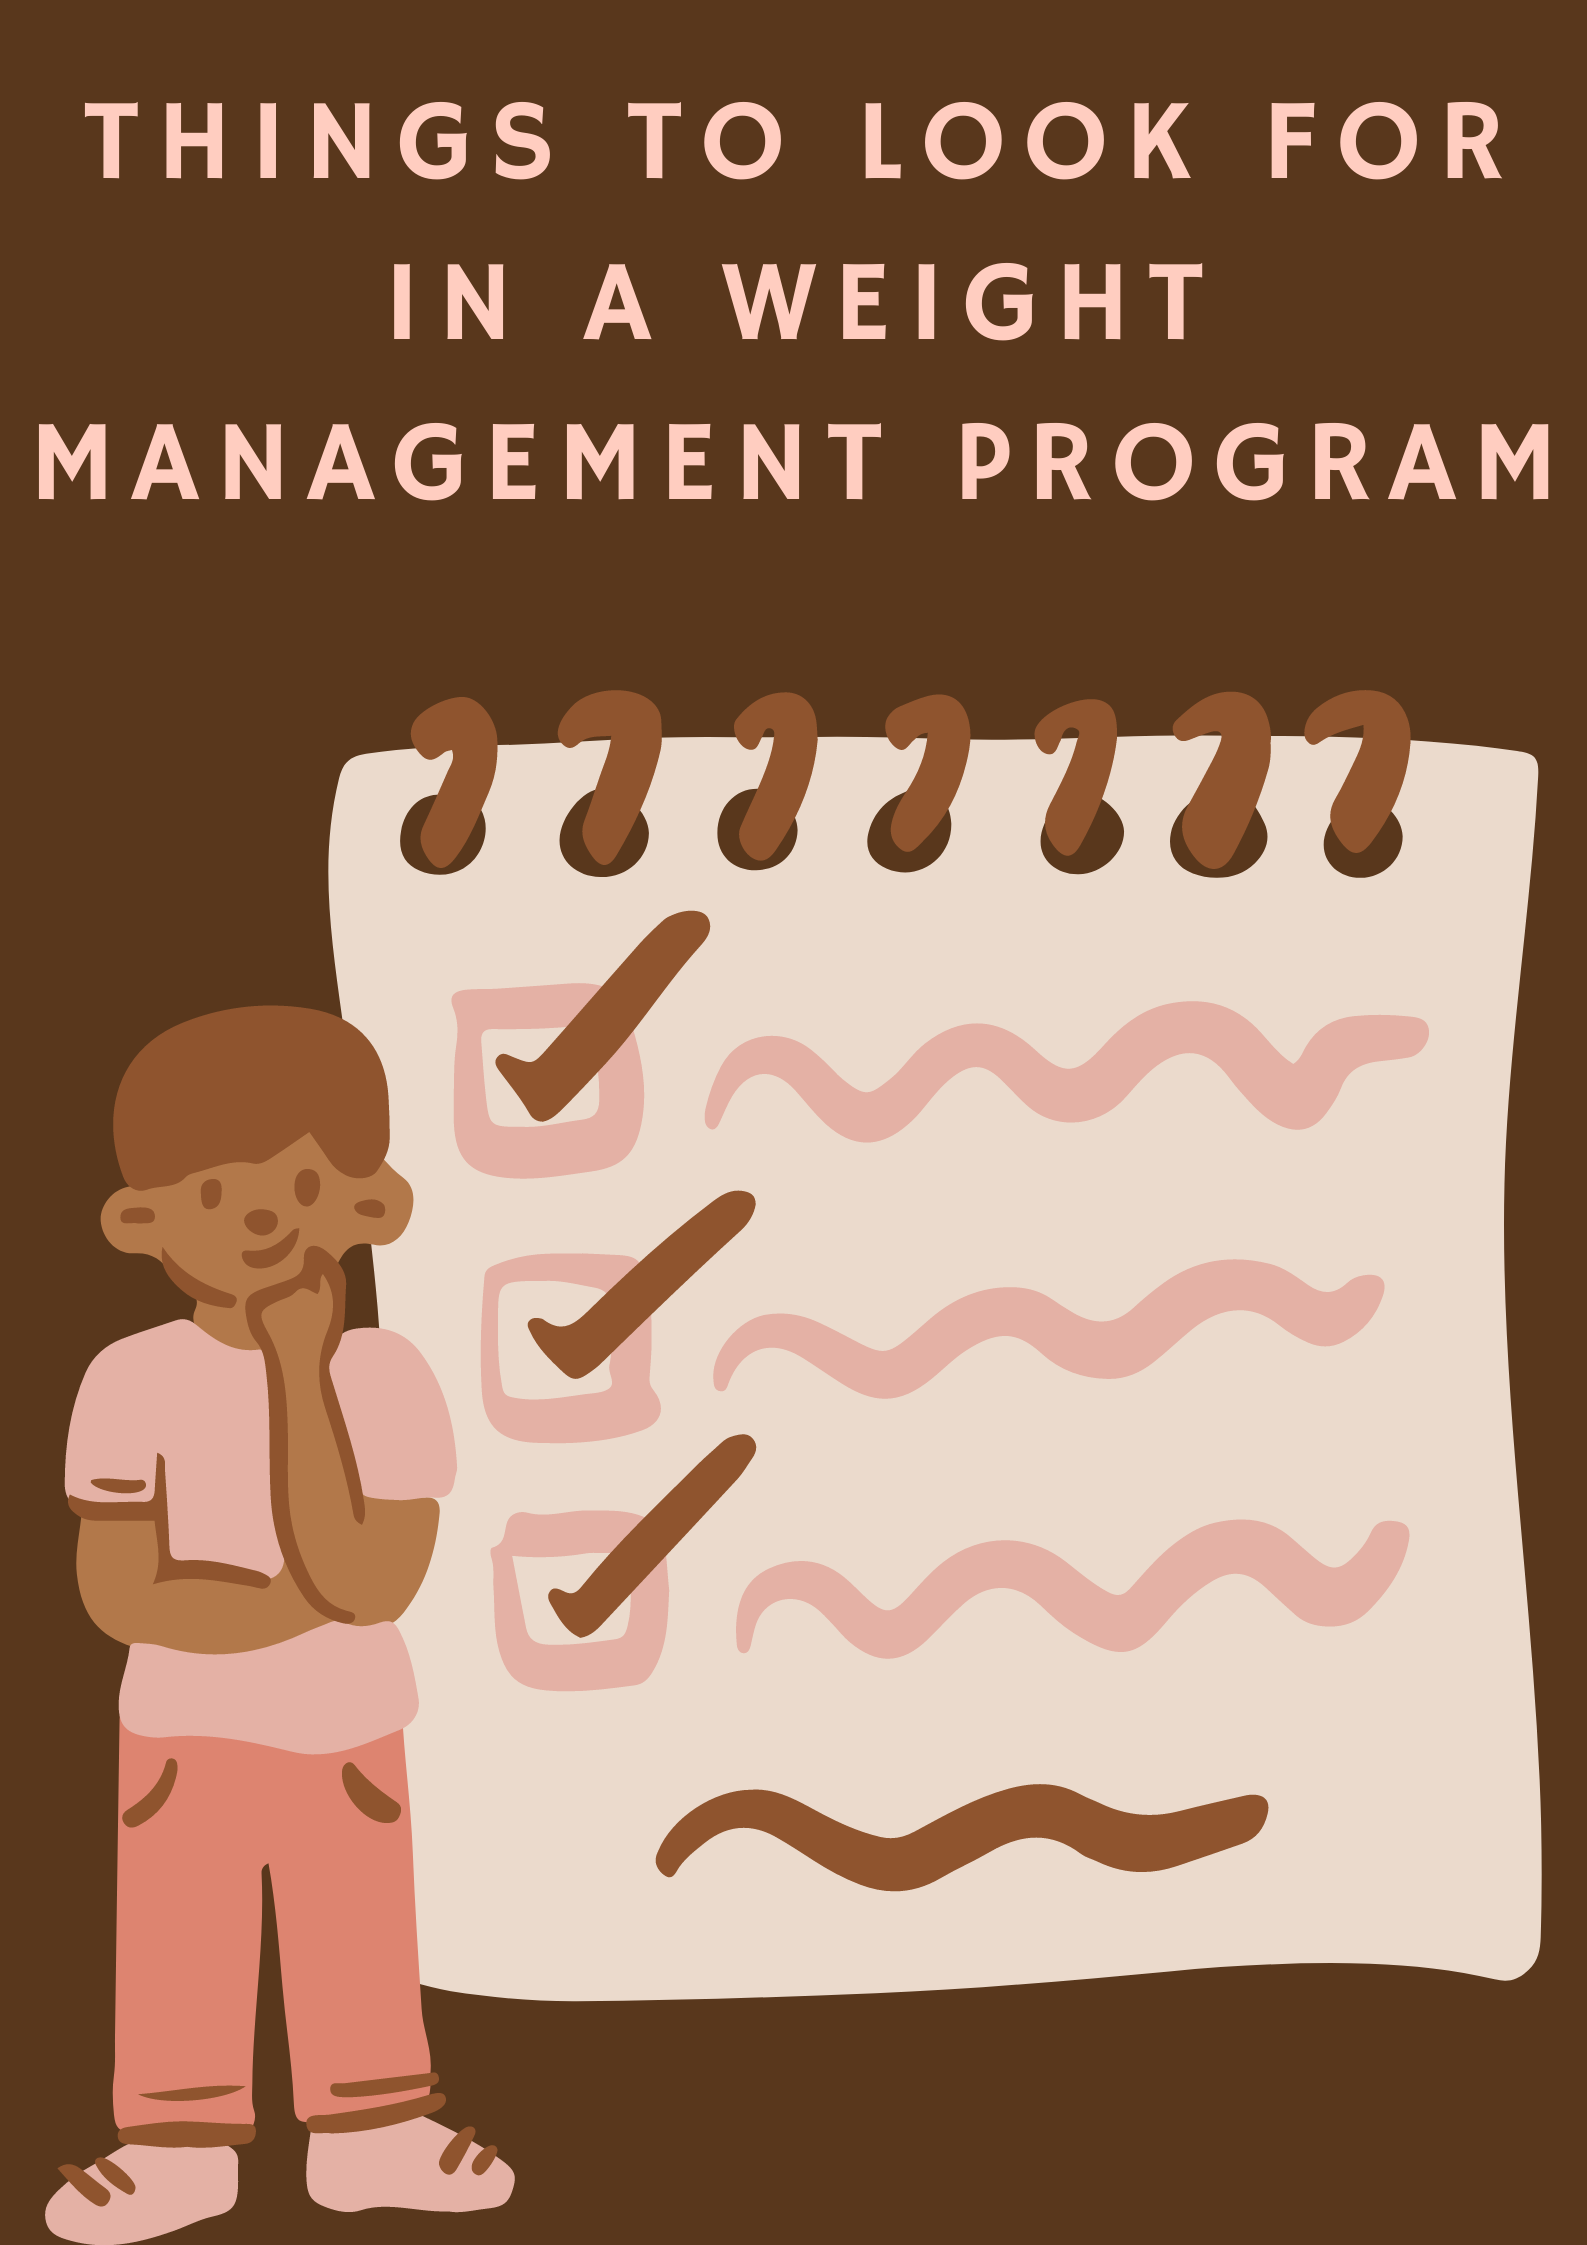 Things-To-Look-For-in-A-Weight-Management-Program